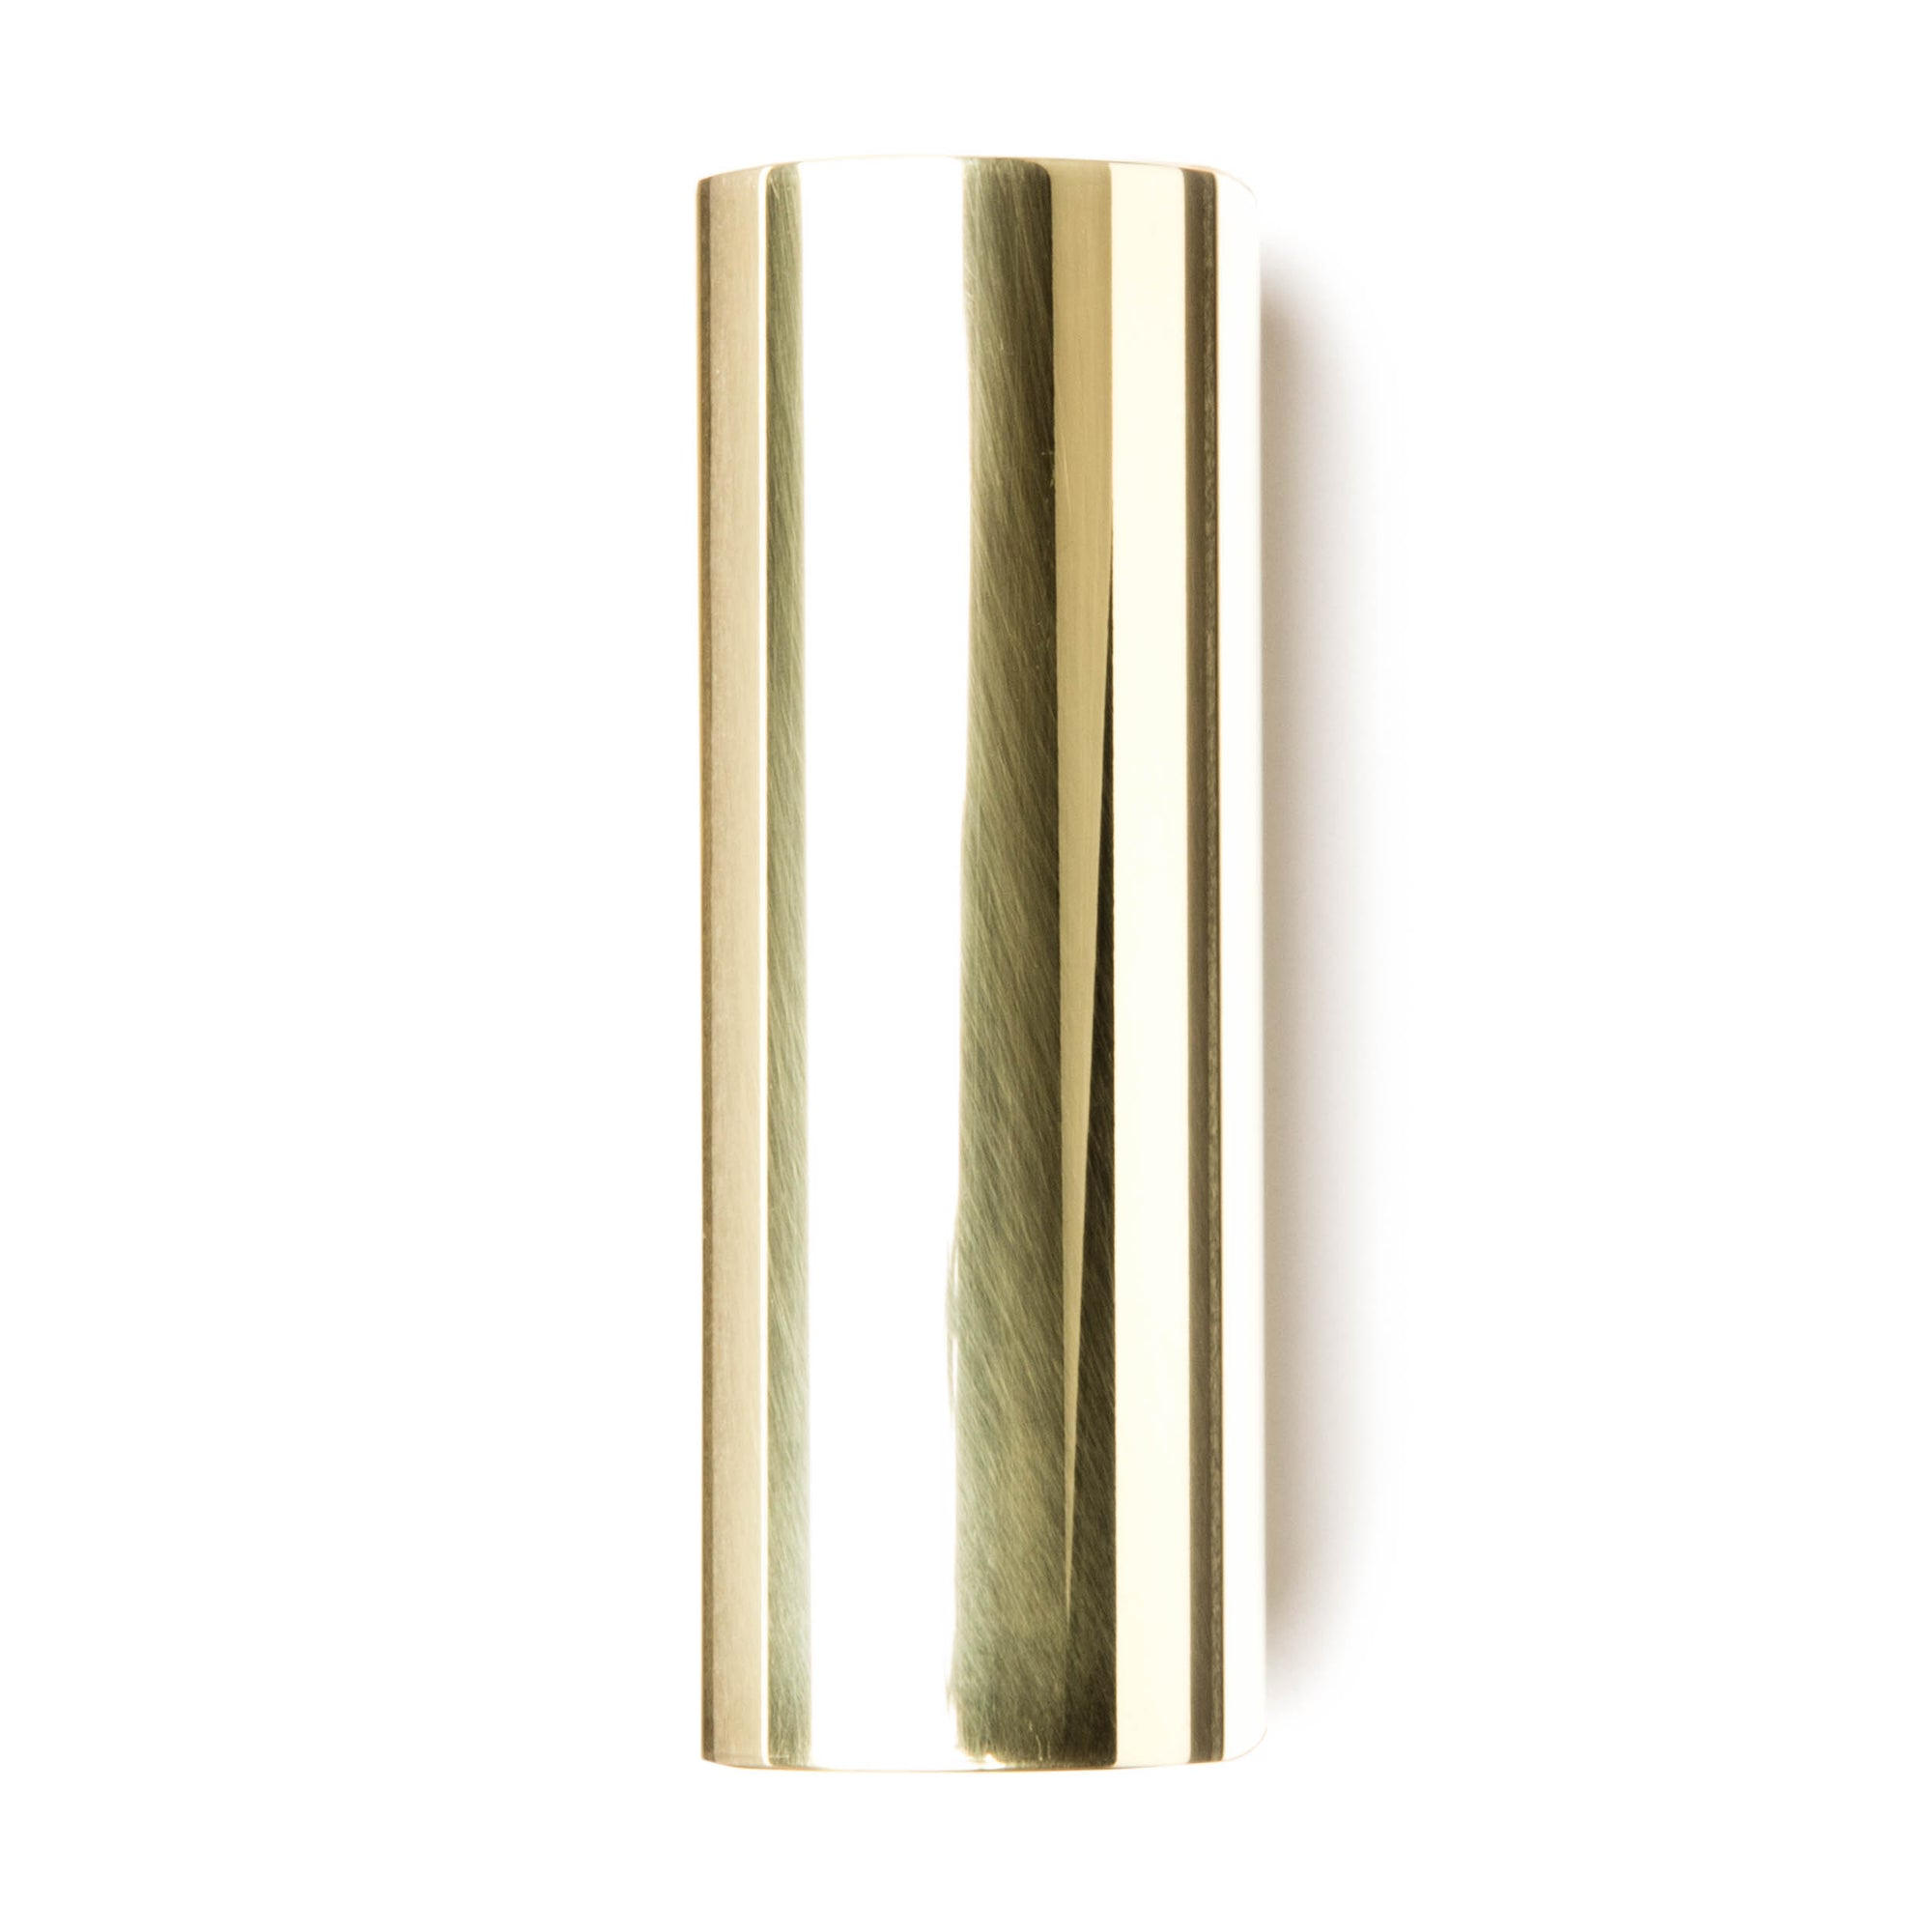 Jim Dunlop Solid Brass Slide 222 Medium